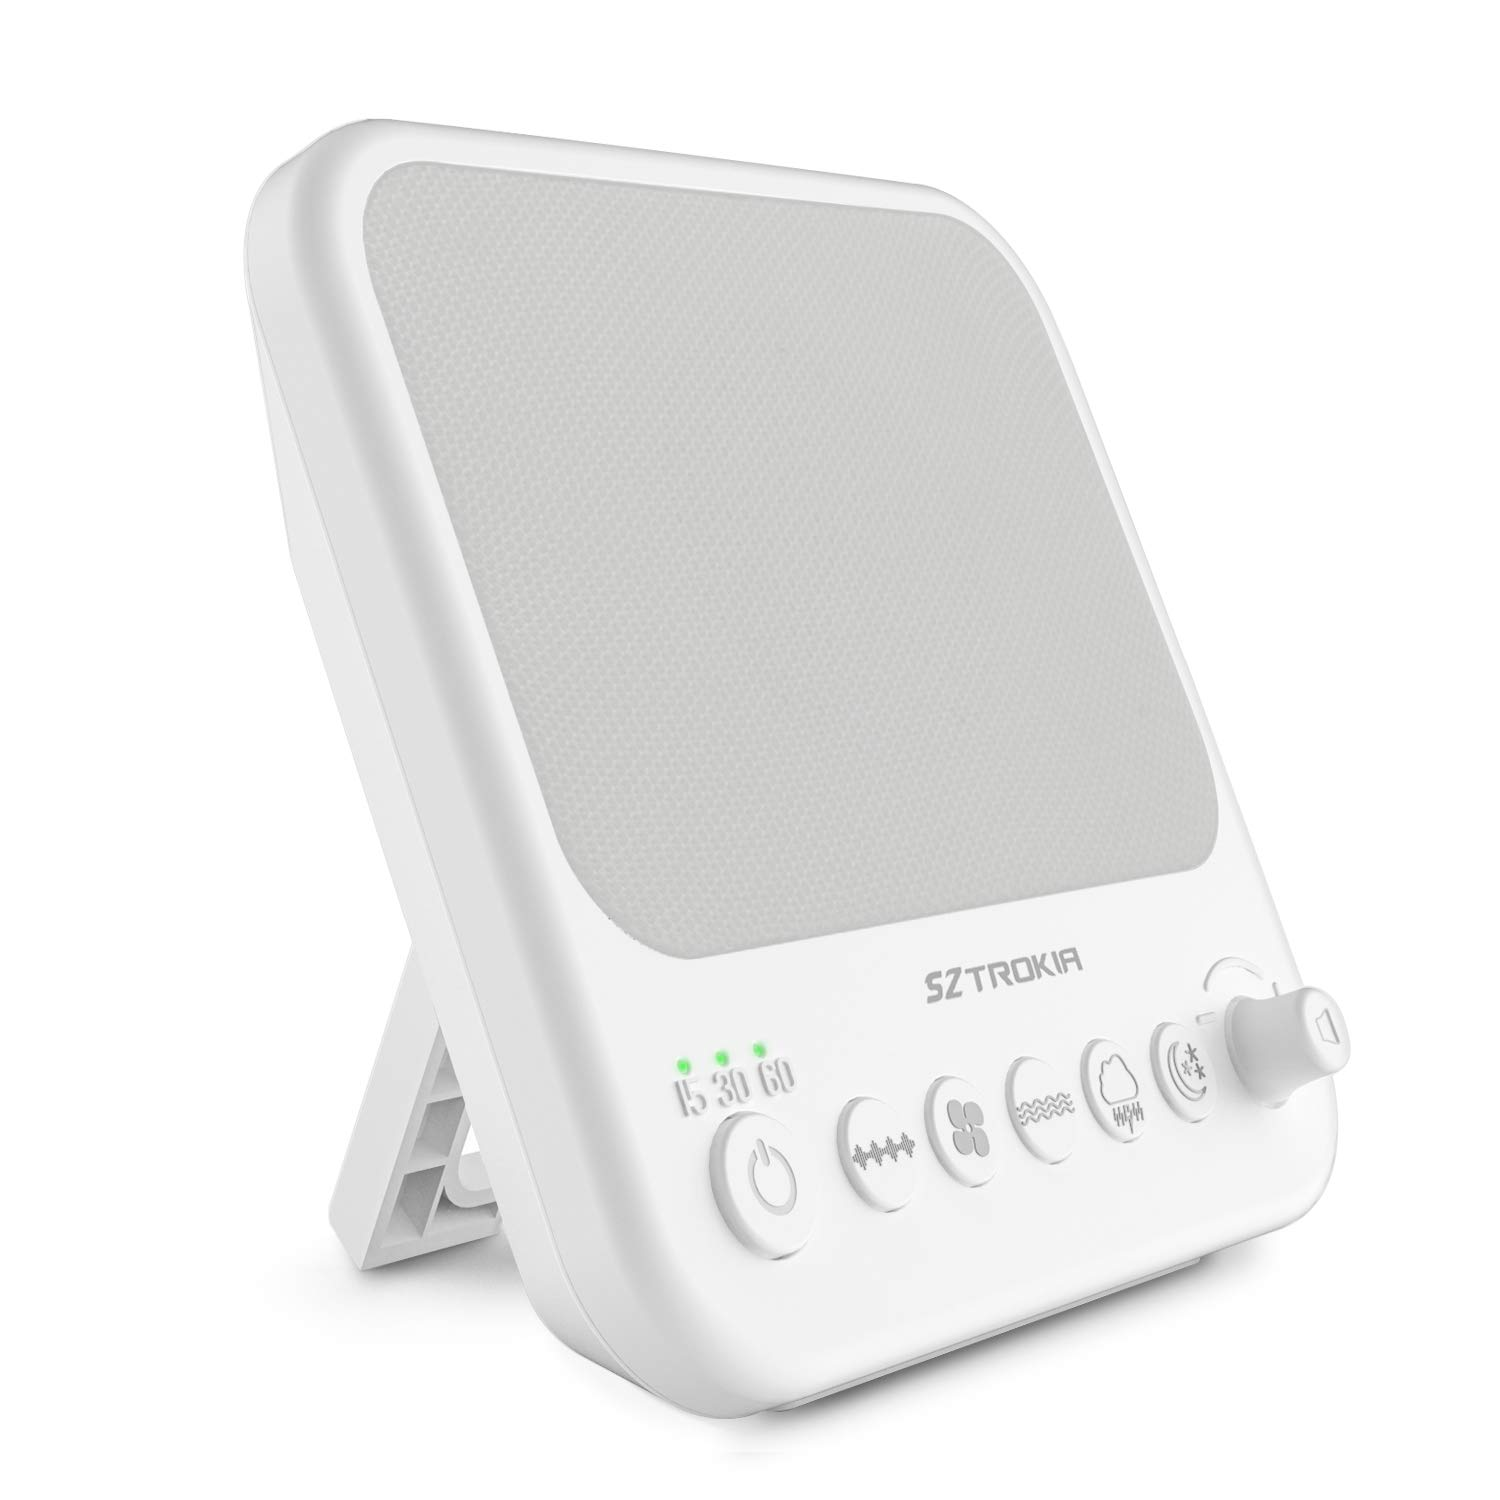 White Noise Machine, Sztrokia Sleep Sound Machine for Baby, Office Privacy, Travel, Insomniac -10 Unique Sound Therapy with Fan Noise, White Noise and Natural Sounds, Sleep Timer, USB Charger Port by Sztrokia